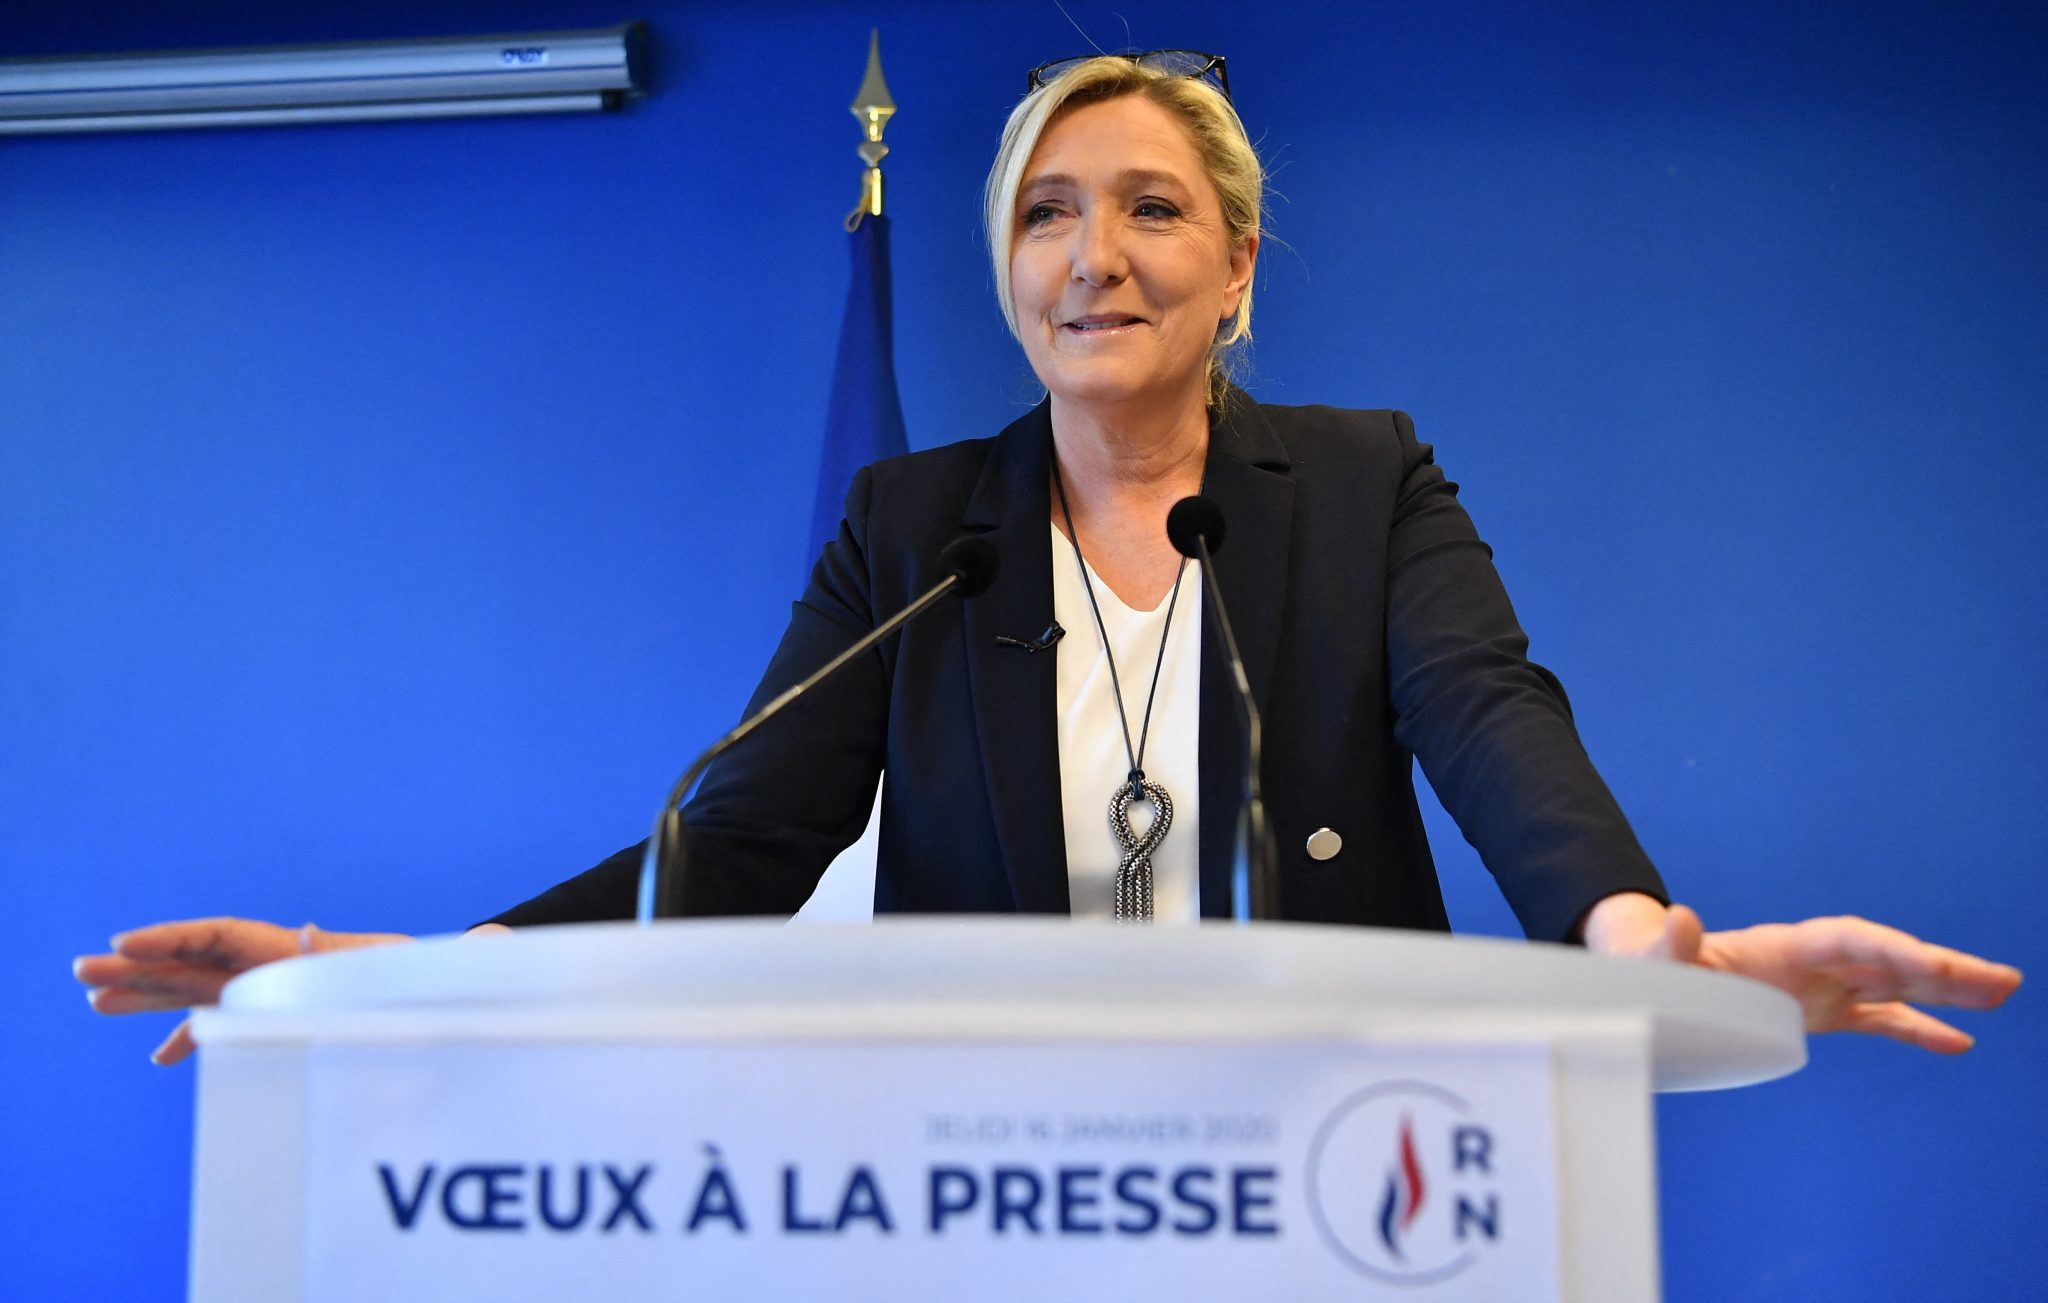 Marine Le Pen Addresses Her New-year Wishes - Paris